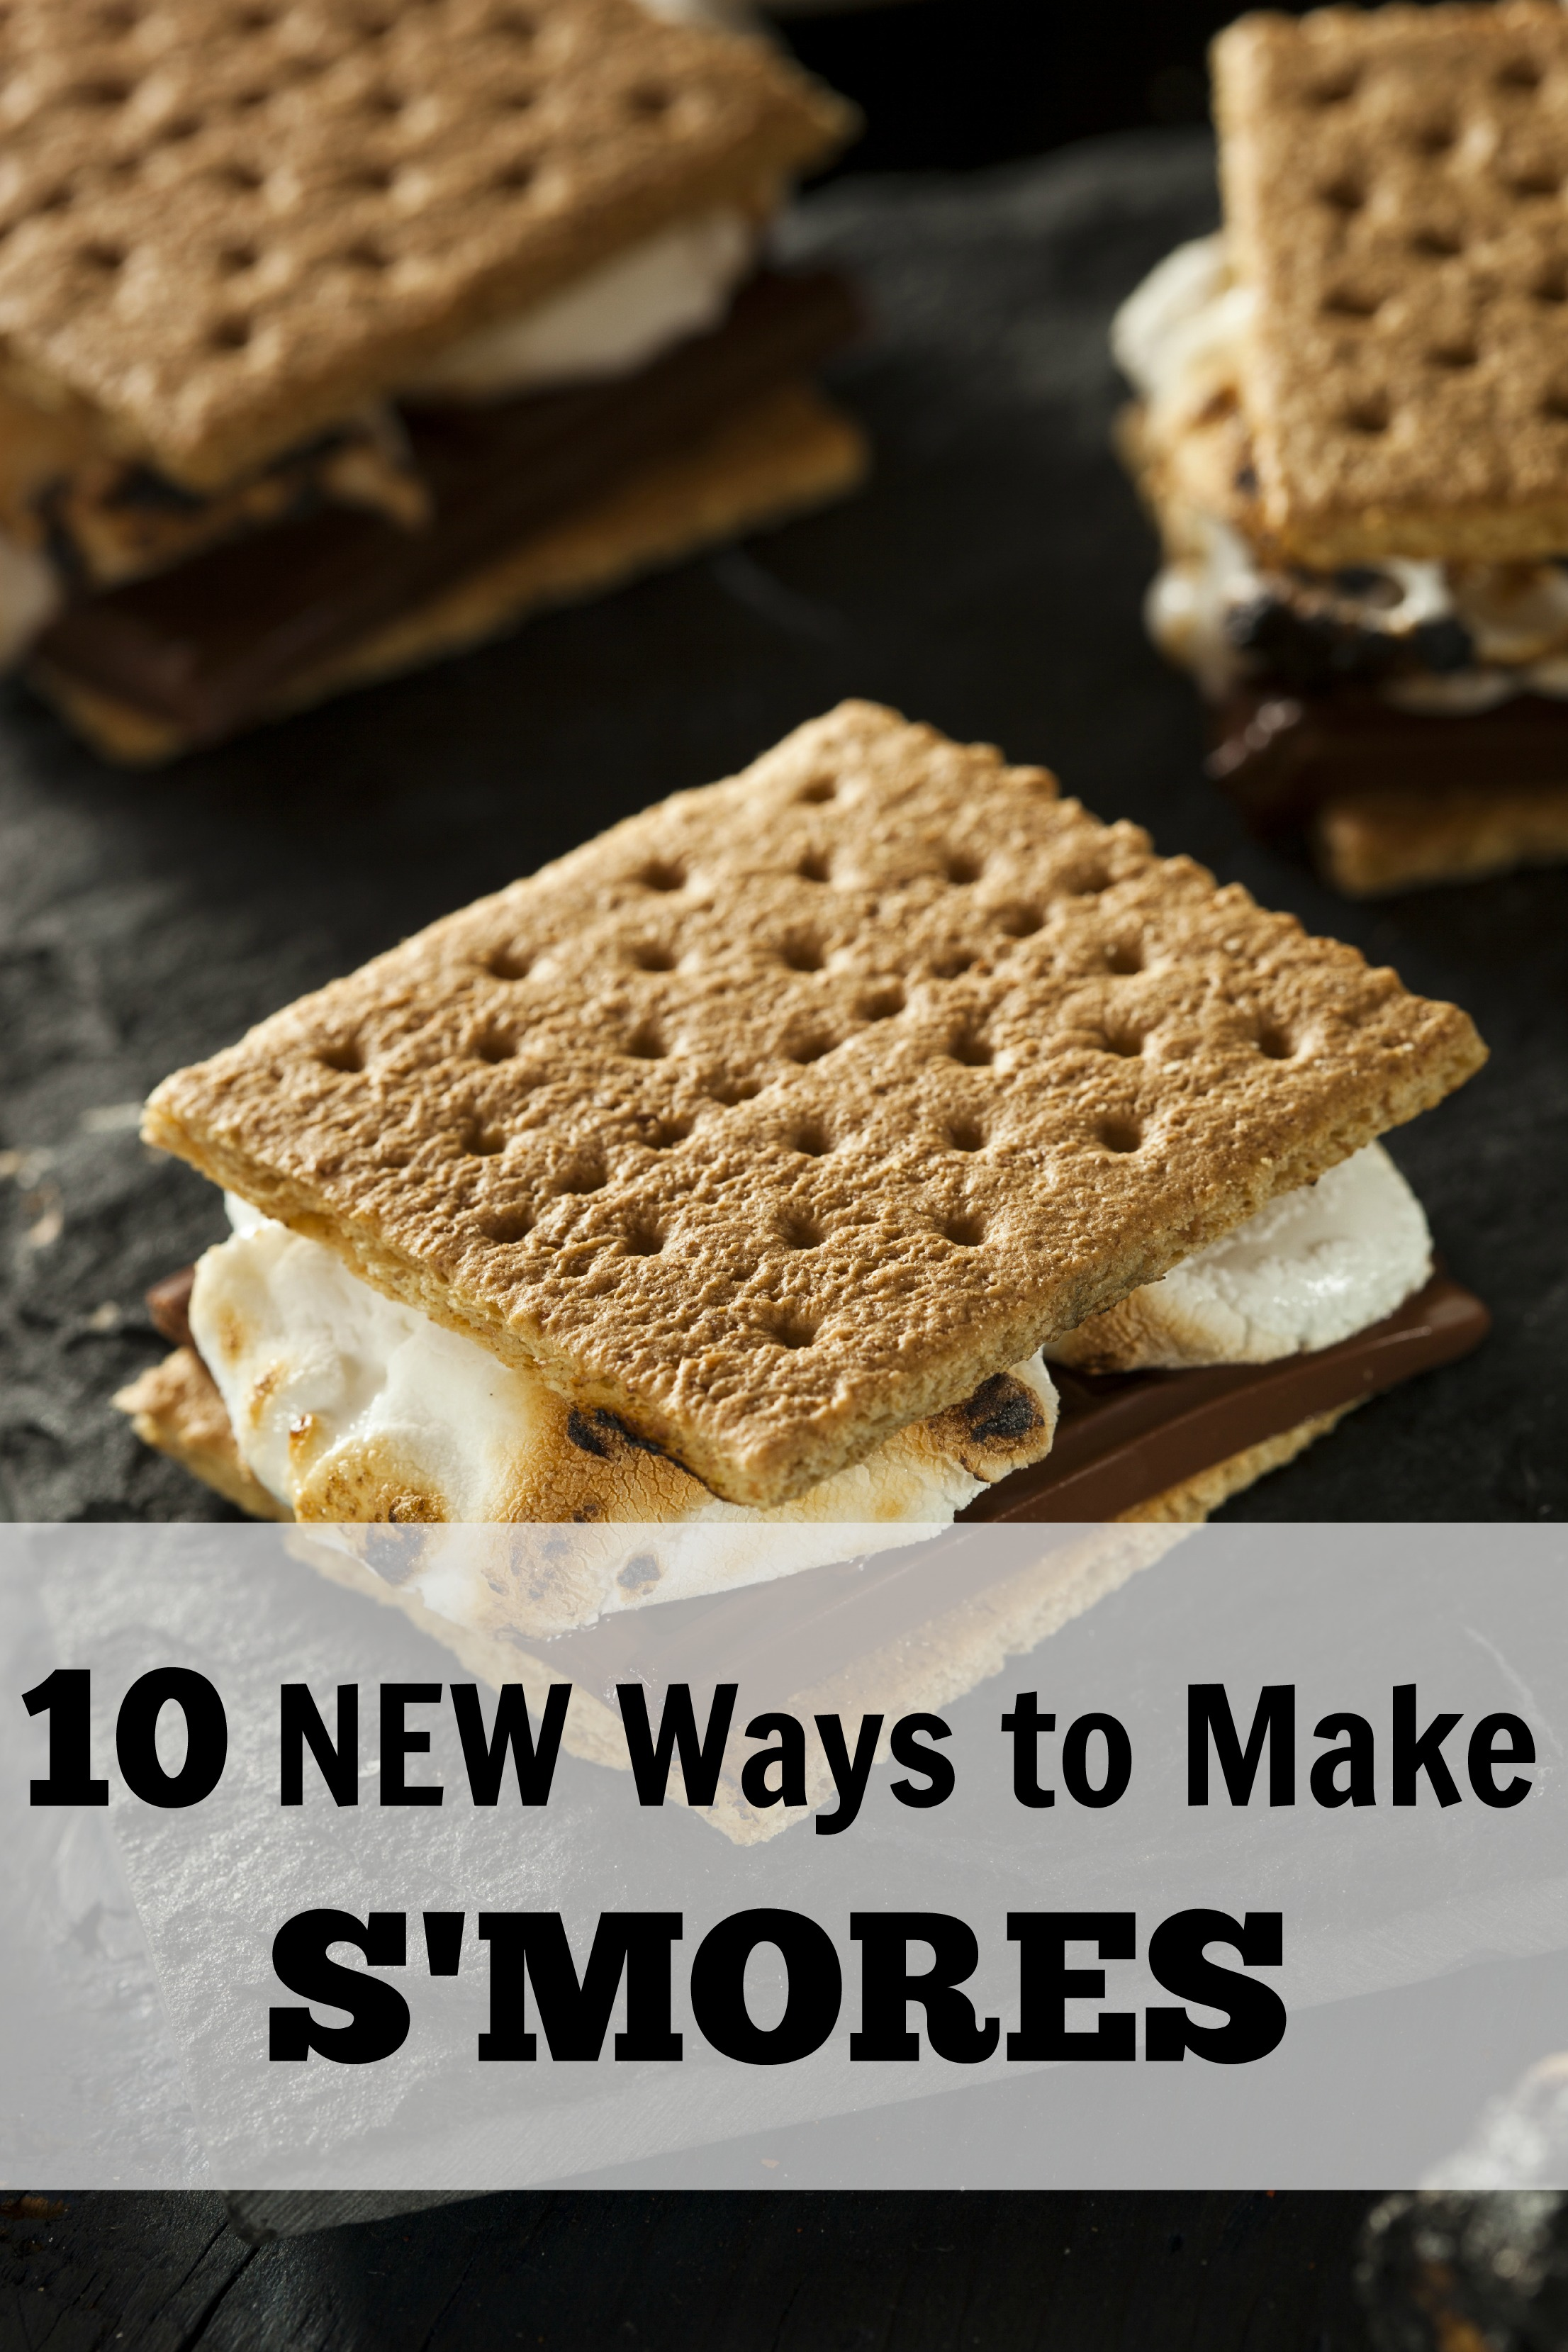 10 NEW Ways to Make S'mores